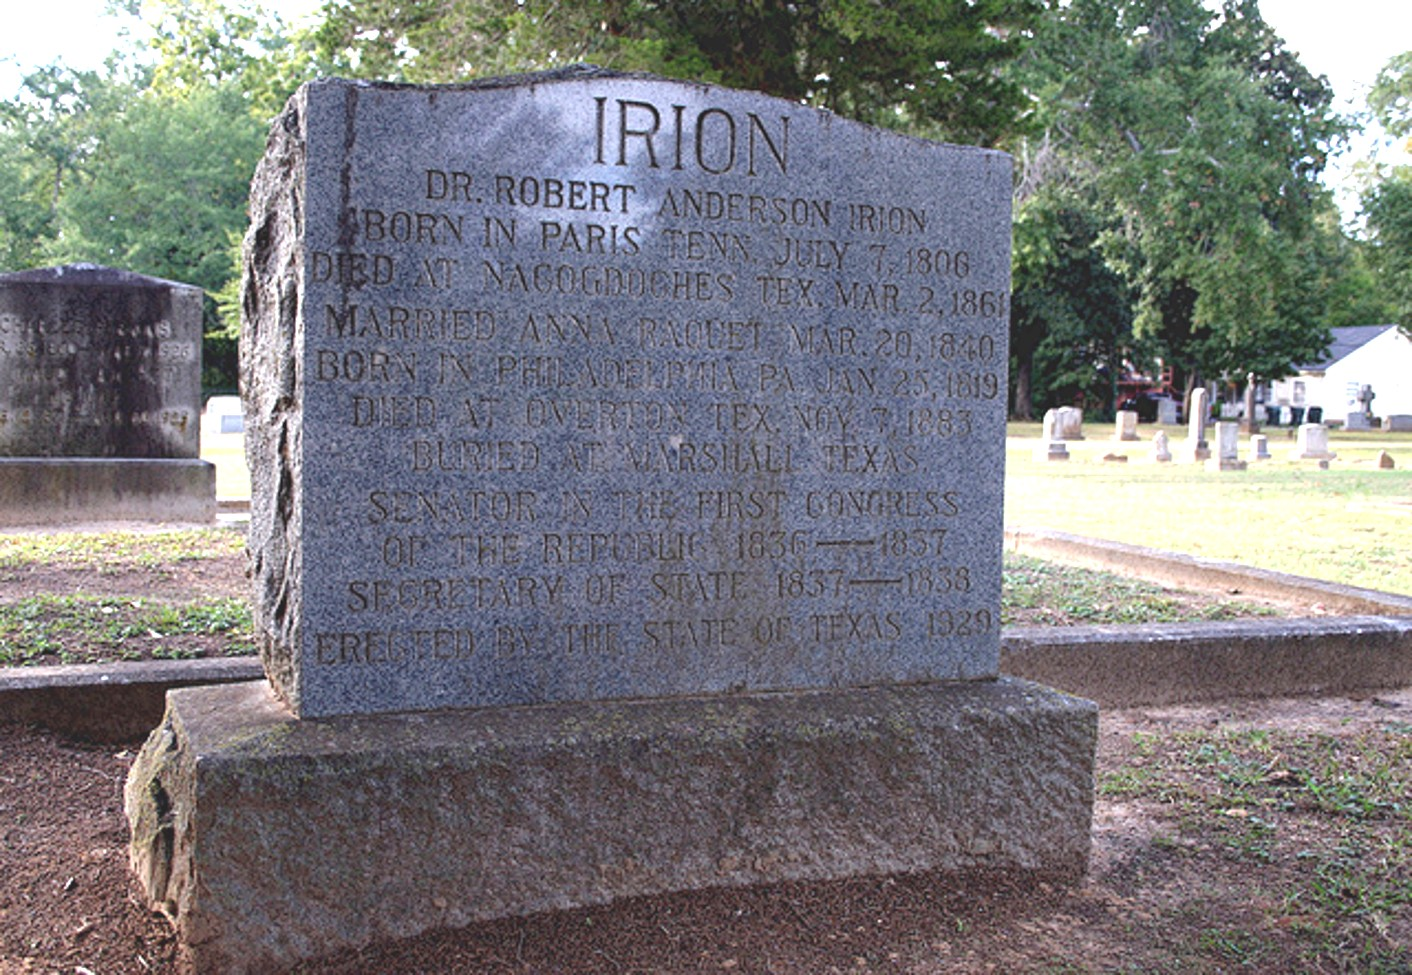 Dr. Robert Anderson Irion Born in Paris Tenn, July 7, 1806 Died at Nacogdoches Tex. Mar 2, 1861 Married Anna Raguet Mar 20, 1840 Born in Philadelphia, PA Jan 25, 1819 Died at Overton, Tex. Nov 7, 1883 Buried at Marshall, Texas Senator in the First Congress Of The Republic 1836-1837 Secretary of State 1837-1838 Erected by The State of Texas 1929 Photo courtesy of Chris Adams - Exquisitely Bored in Nacogdoches - Copyright © 2013. All Rights Reserved. Used with written permission dated April 29, 2013.